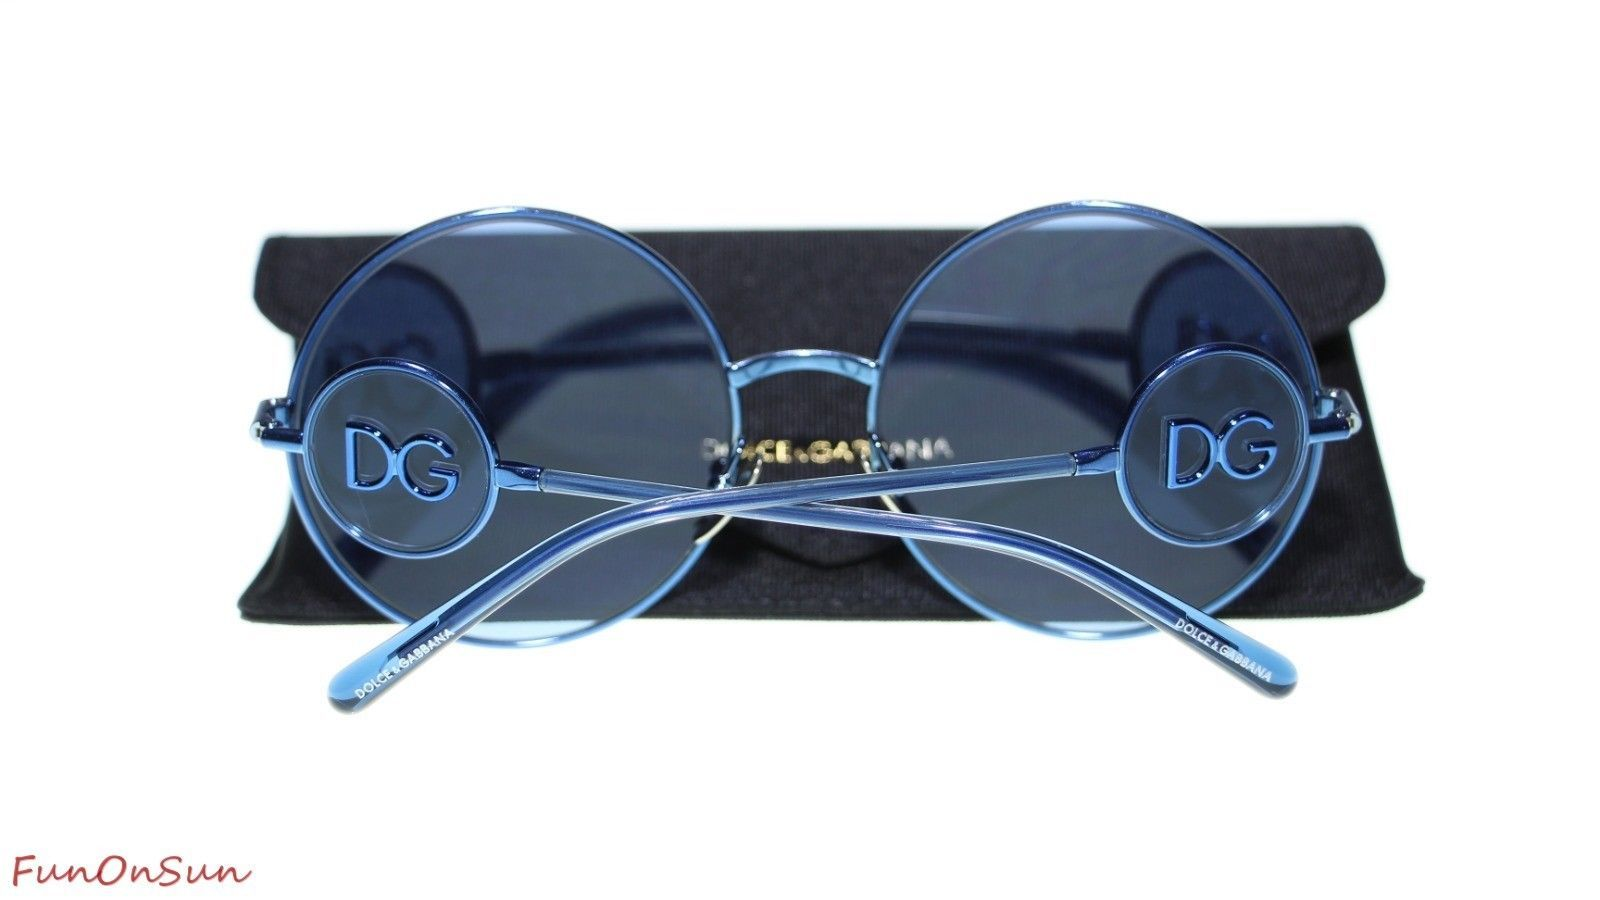 Dolce Gabbana Women Sunglasses DG2205 132480 Blue/Blue Lens 59mm